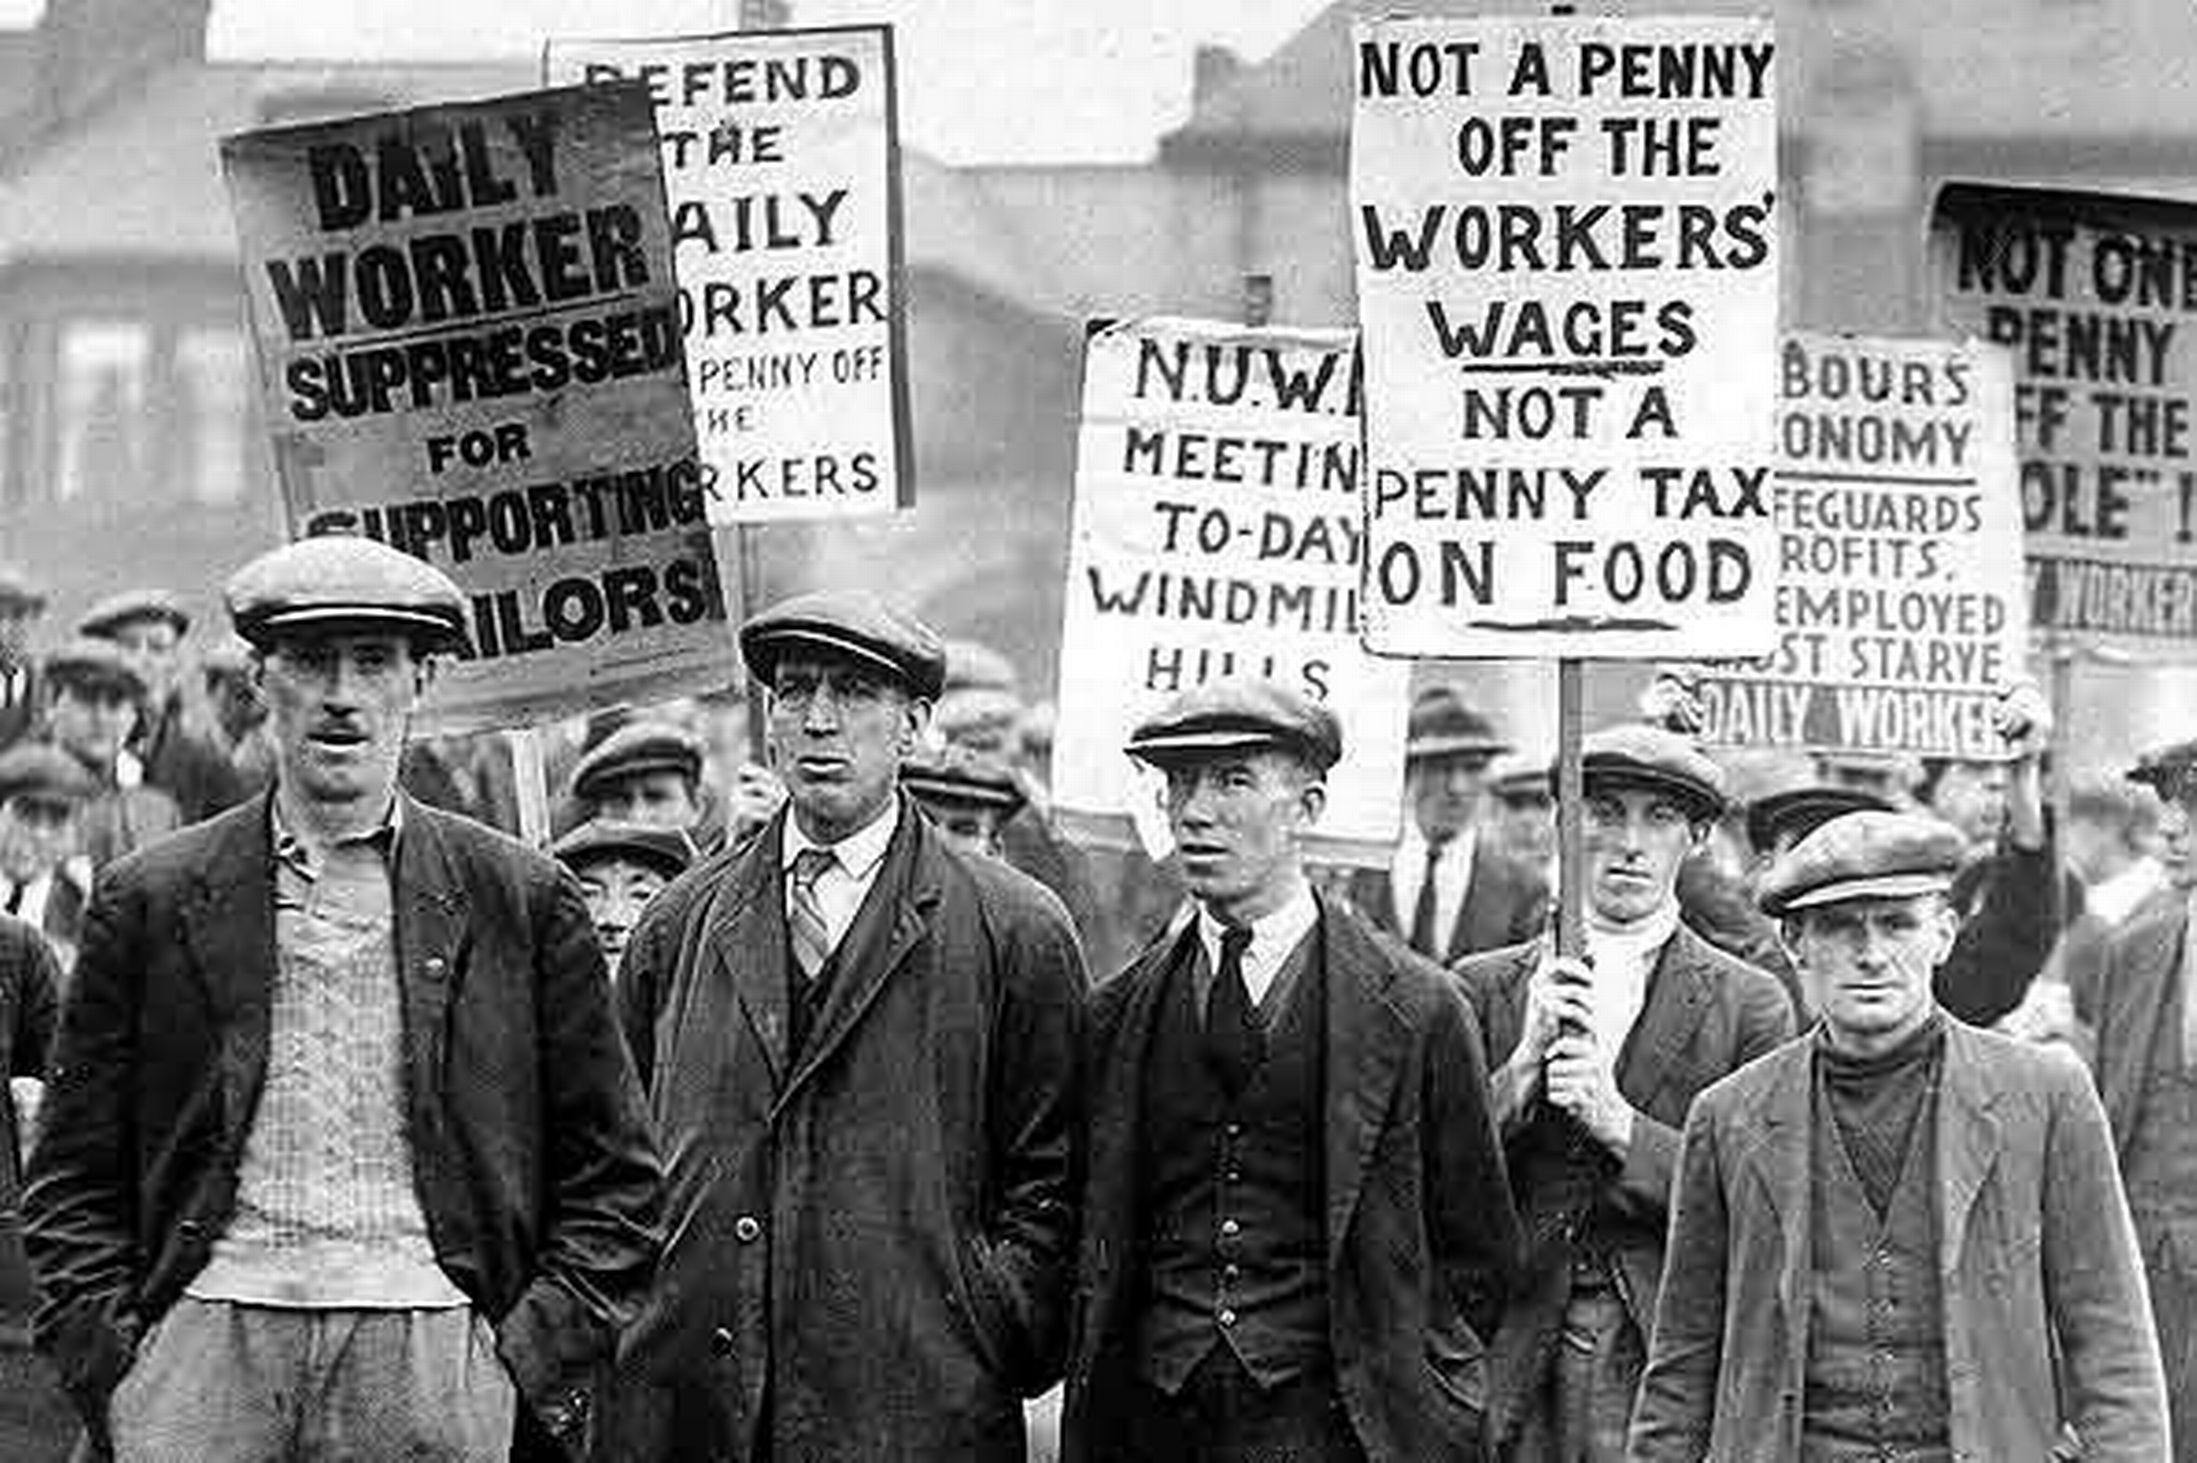 an introduction to the history of the general strike of 1926 in britain In may 1926, the trades union congress, the national organization of trade unions in britain, called for a general strike in support of the miners' federation.